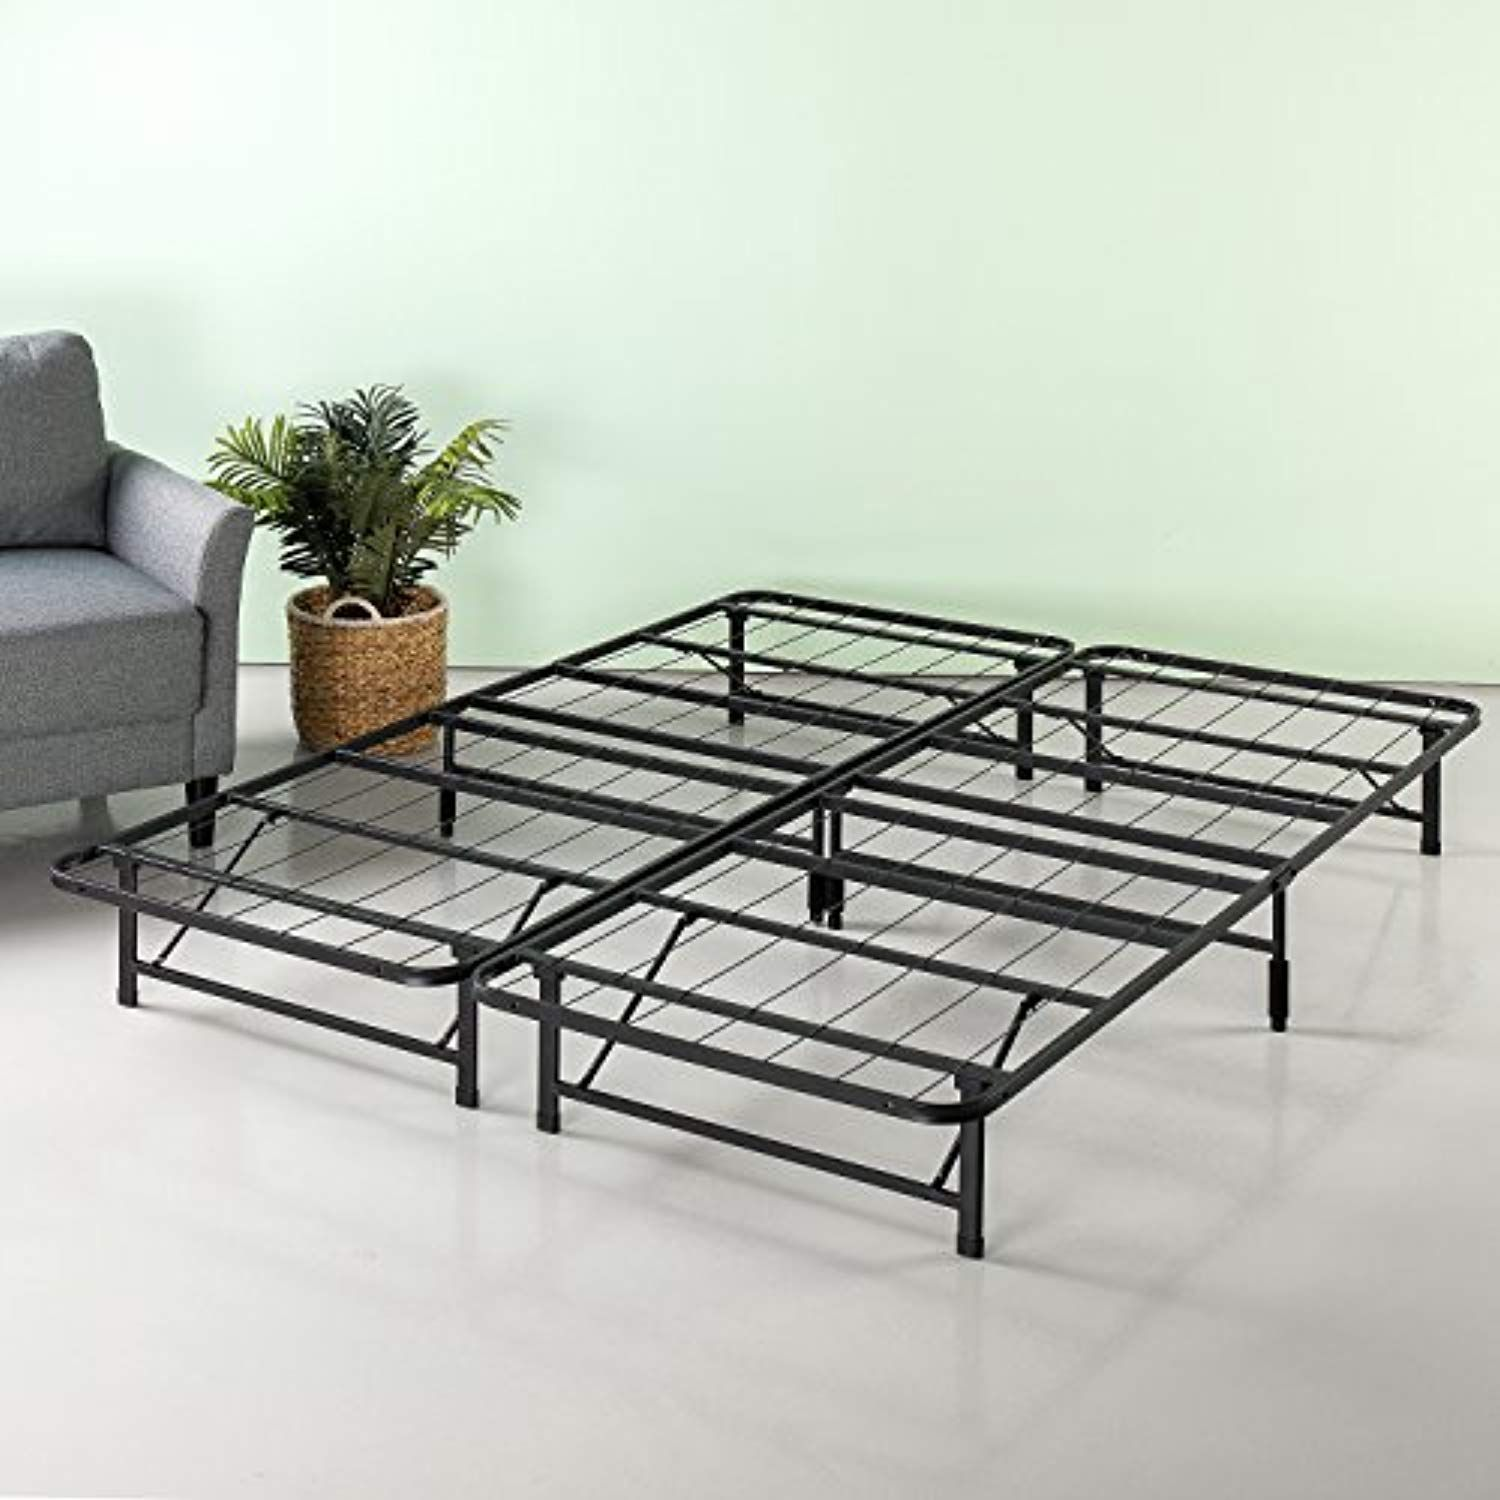 Zinus 10 Inch Smartbase Mattress Foundation Platform Bed Frame